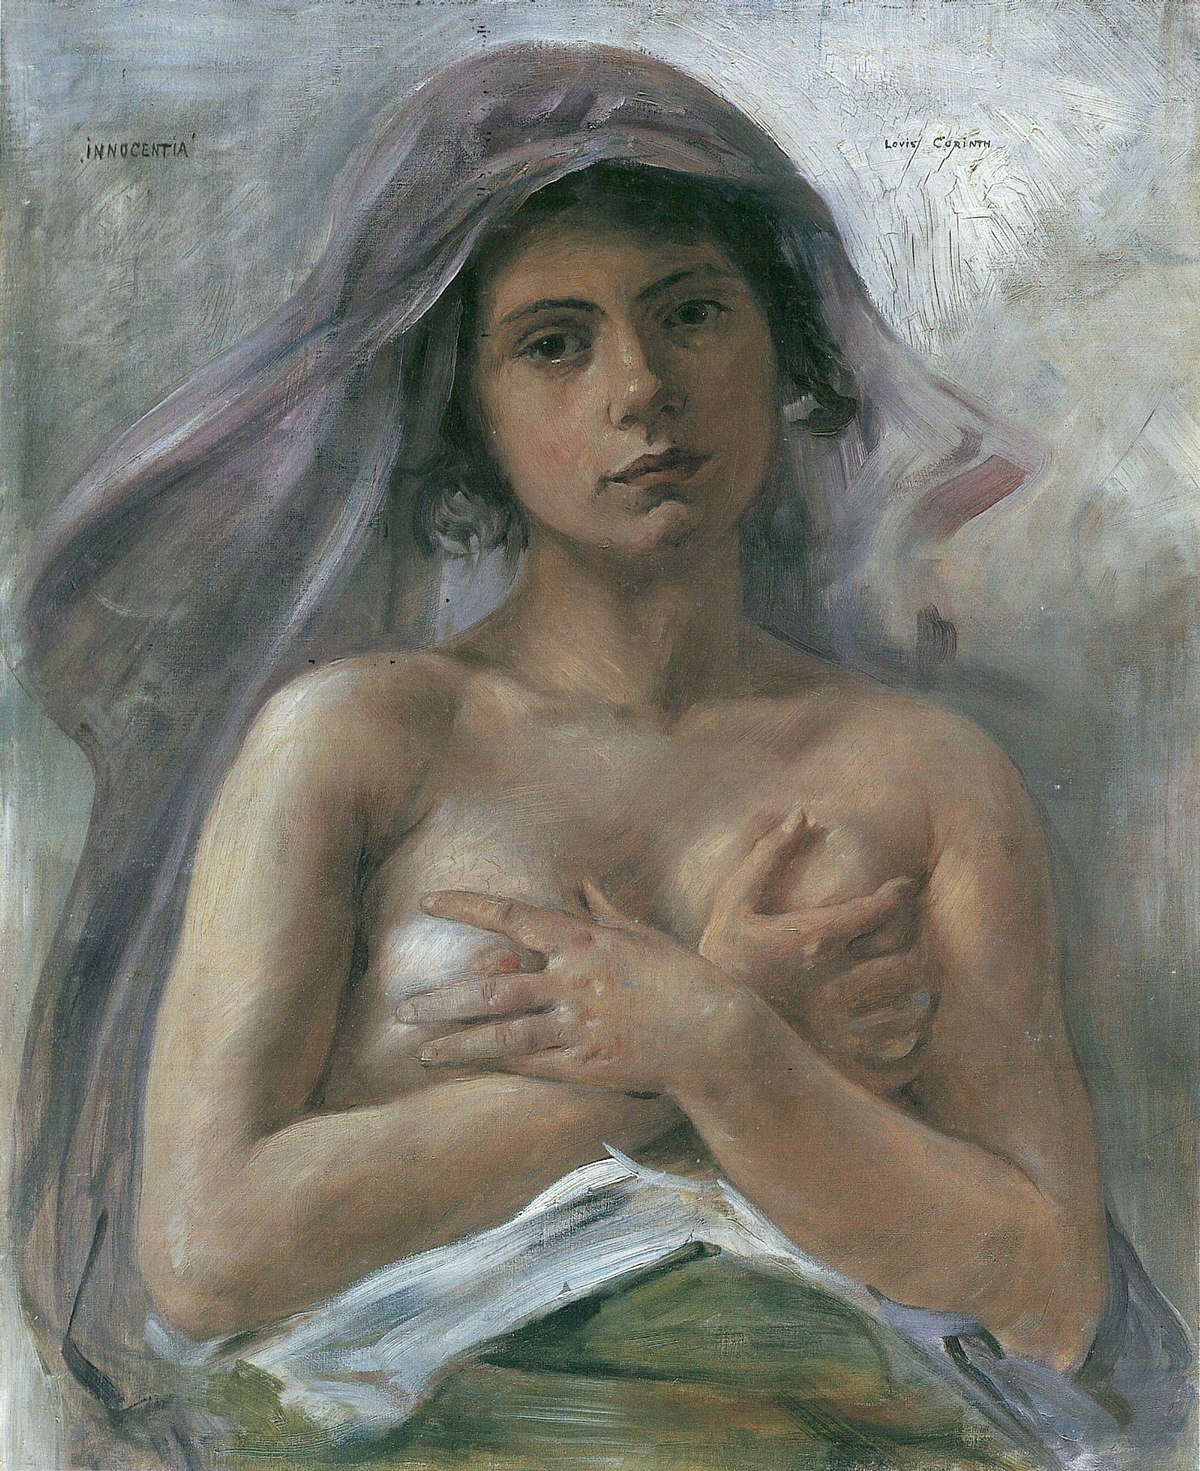 http://upload.wikimedia.org/wikipedia/commons/thumb/5/52/Lovis_Corinth_Innocentia_1890.jpg/1200px-Lovis_Corinth_Innocentia_1890.jpg